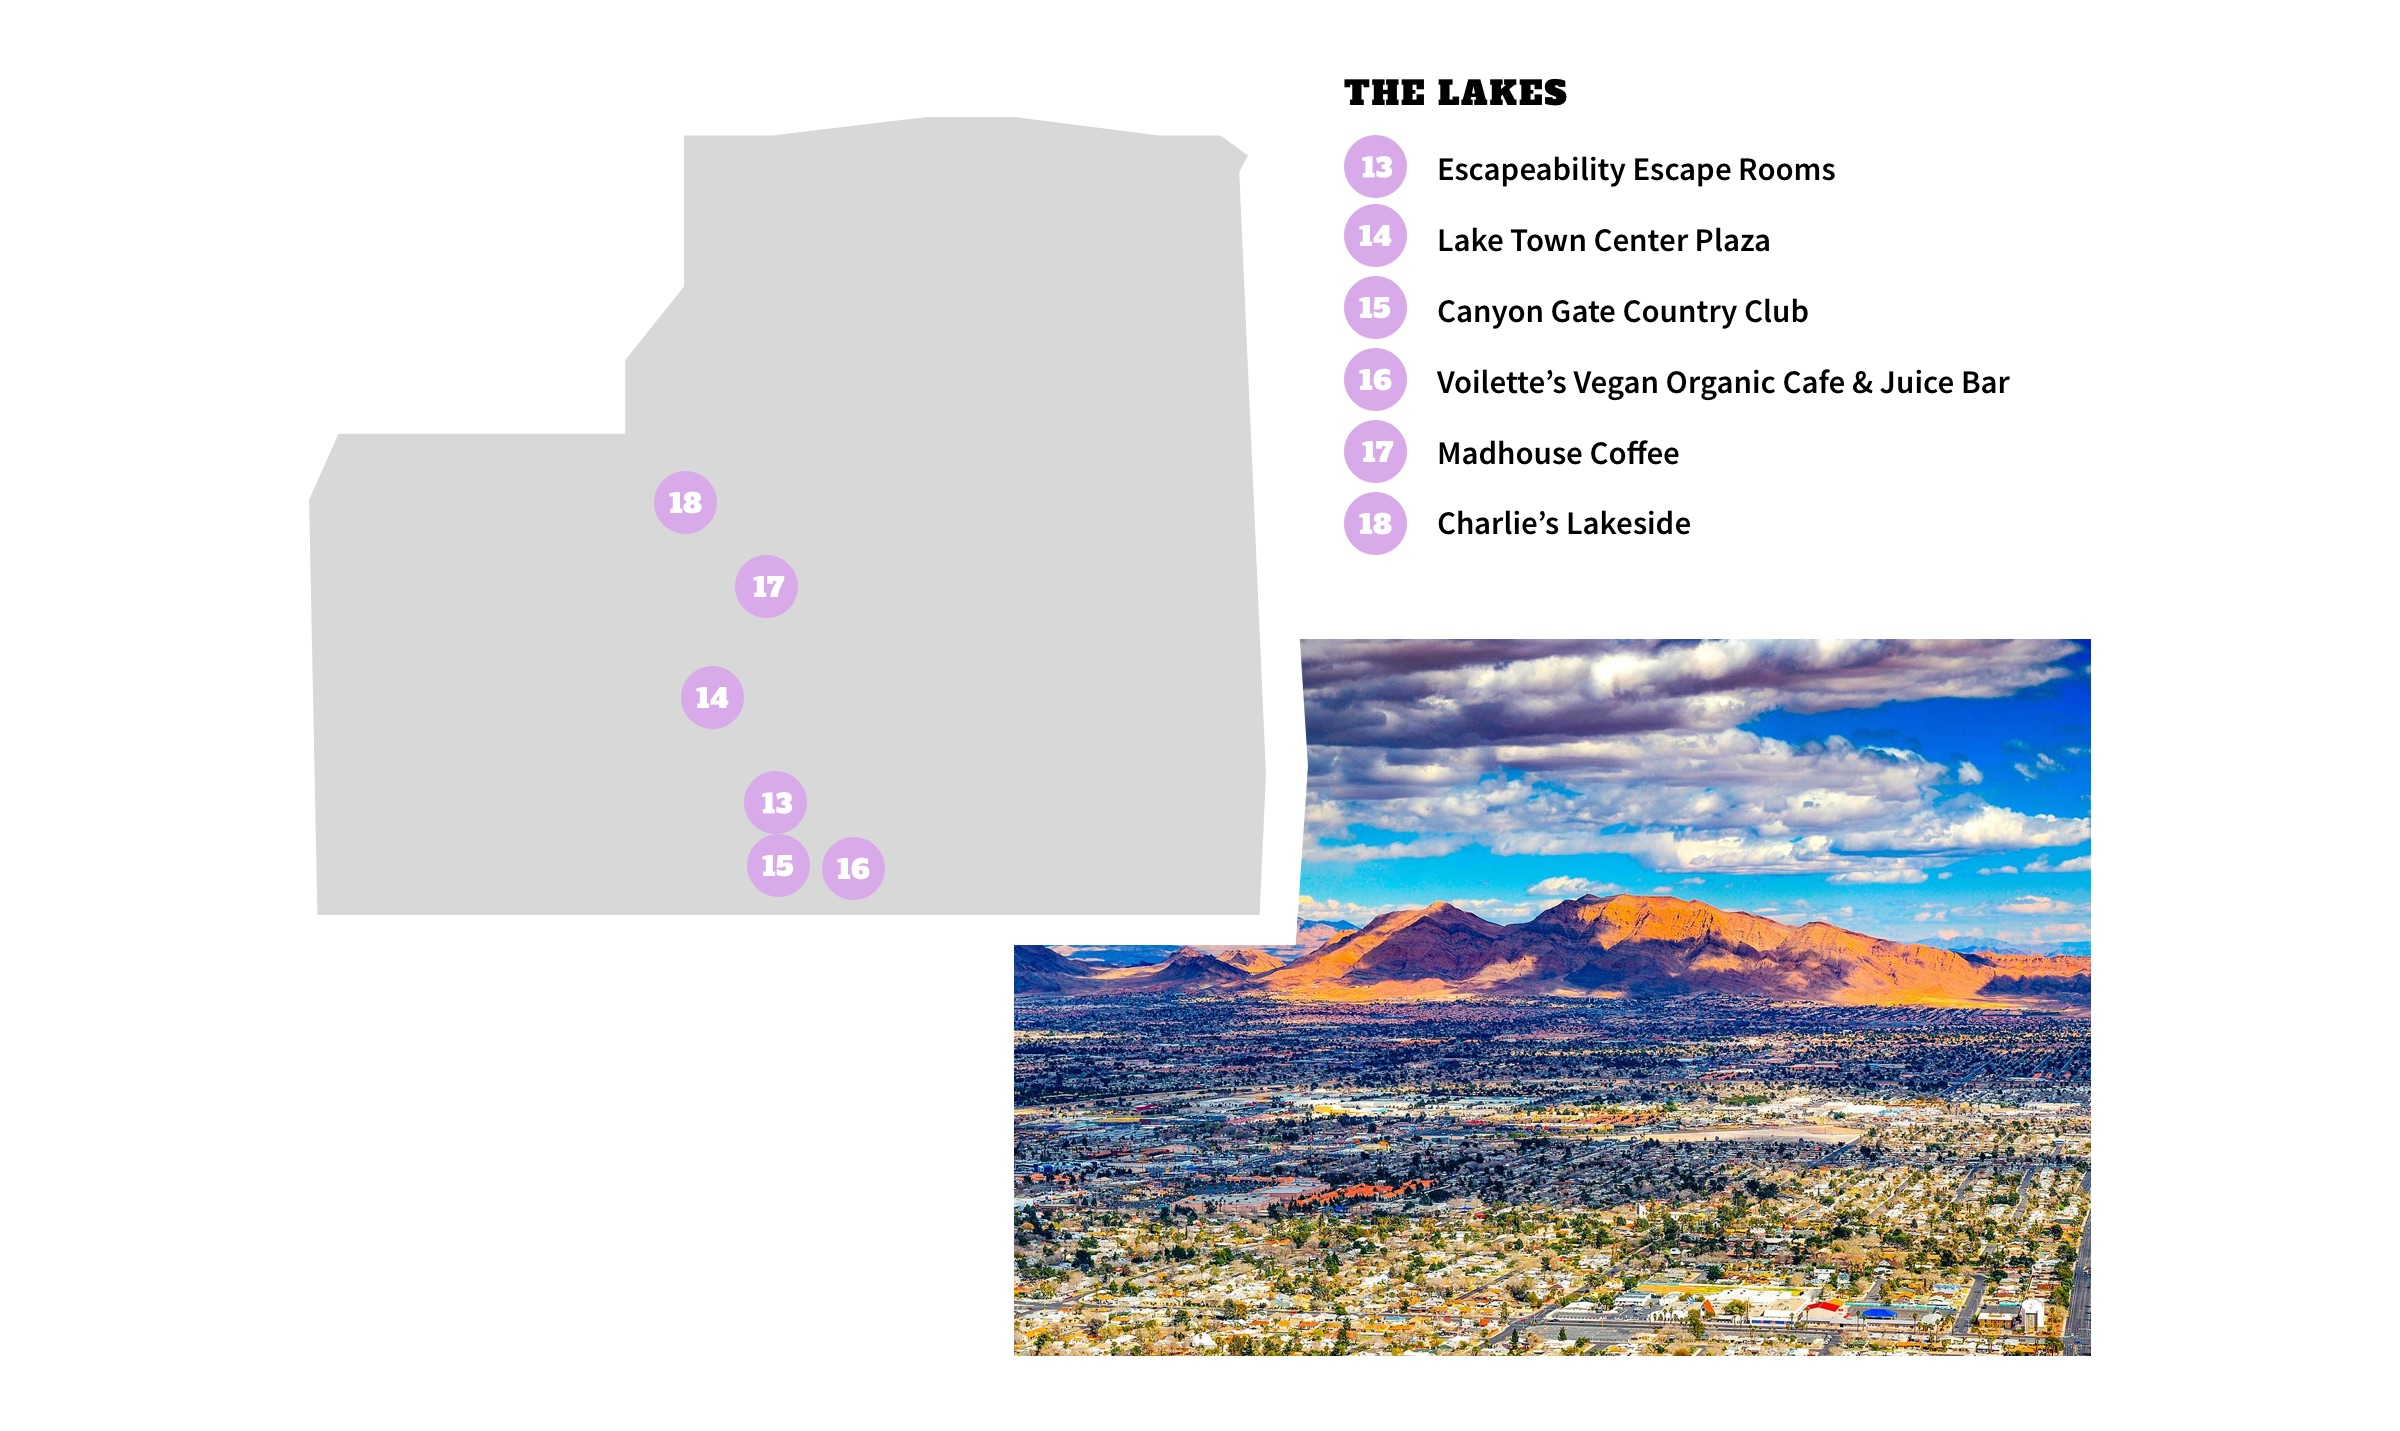 The Lakes Neighborhood Guide - Las Vegas